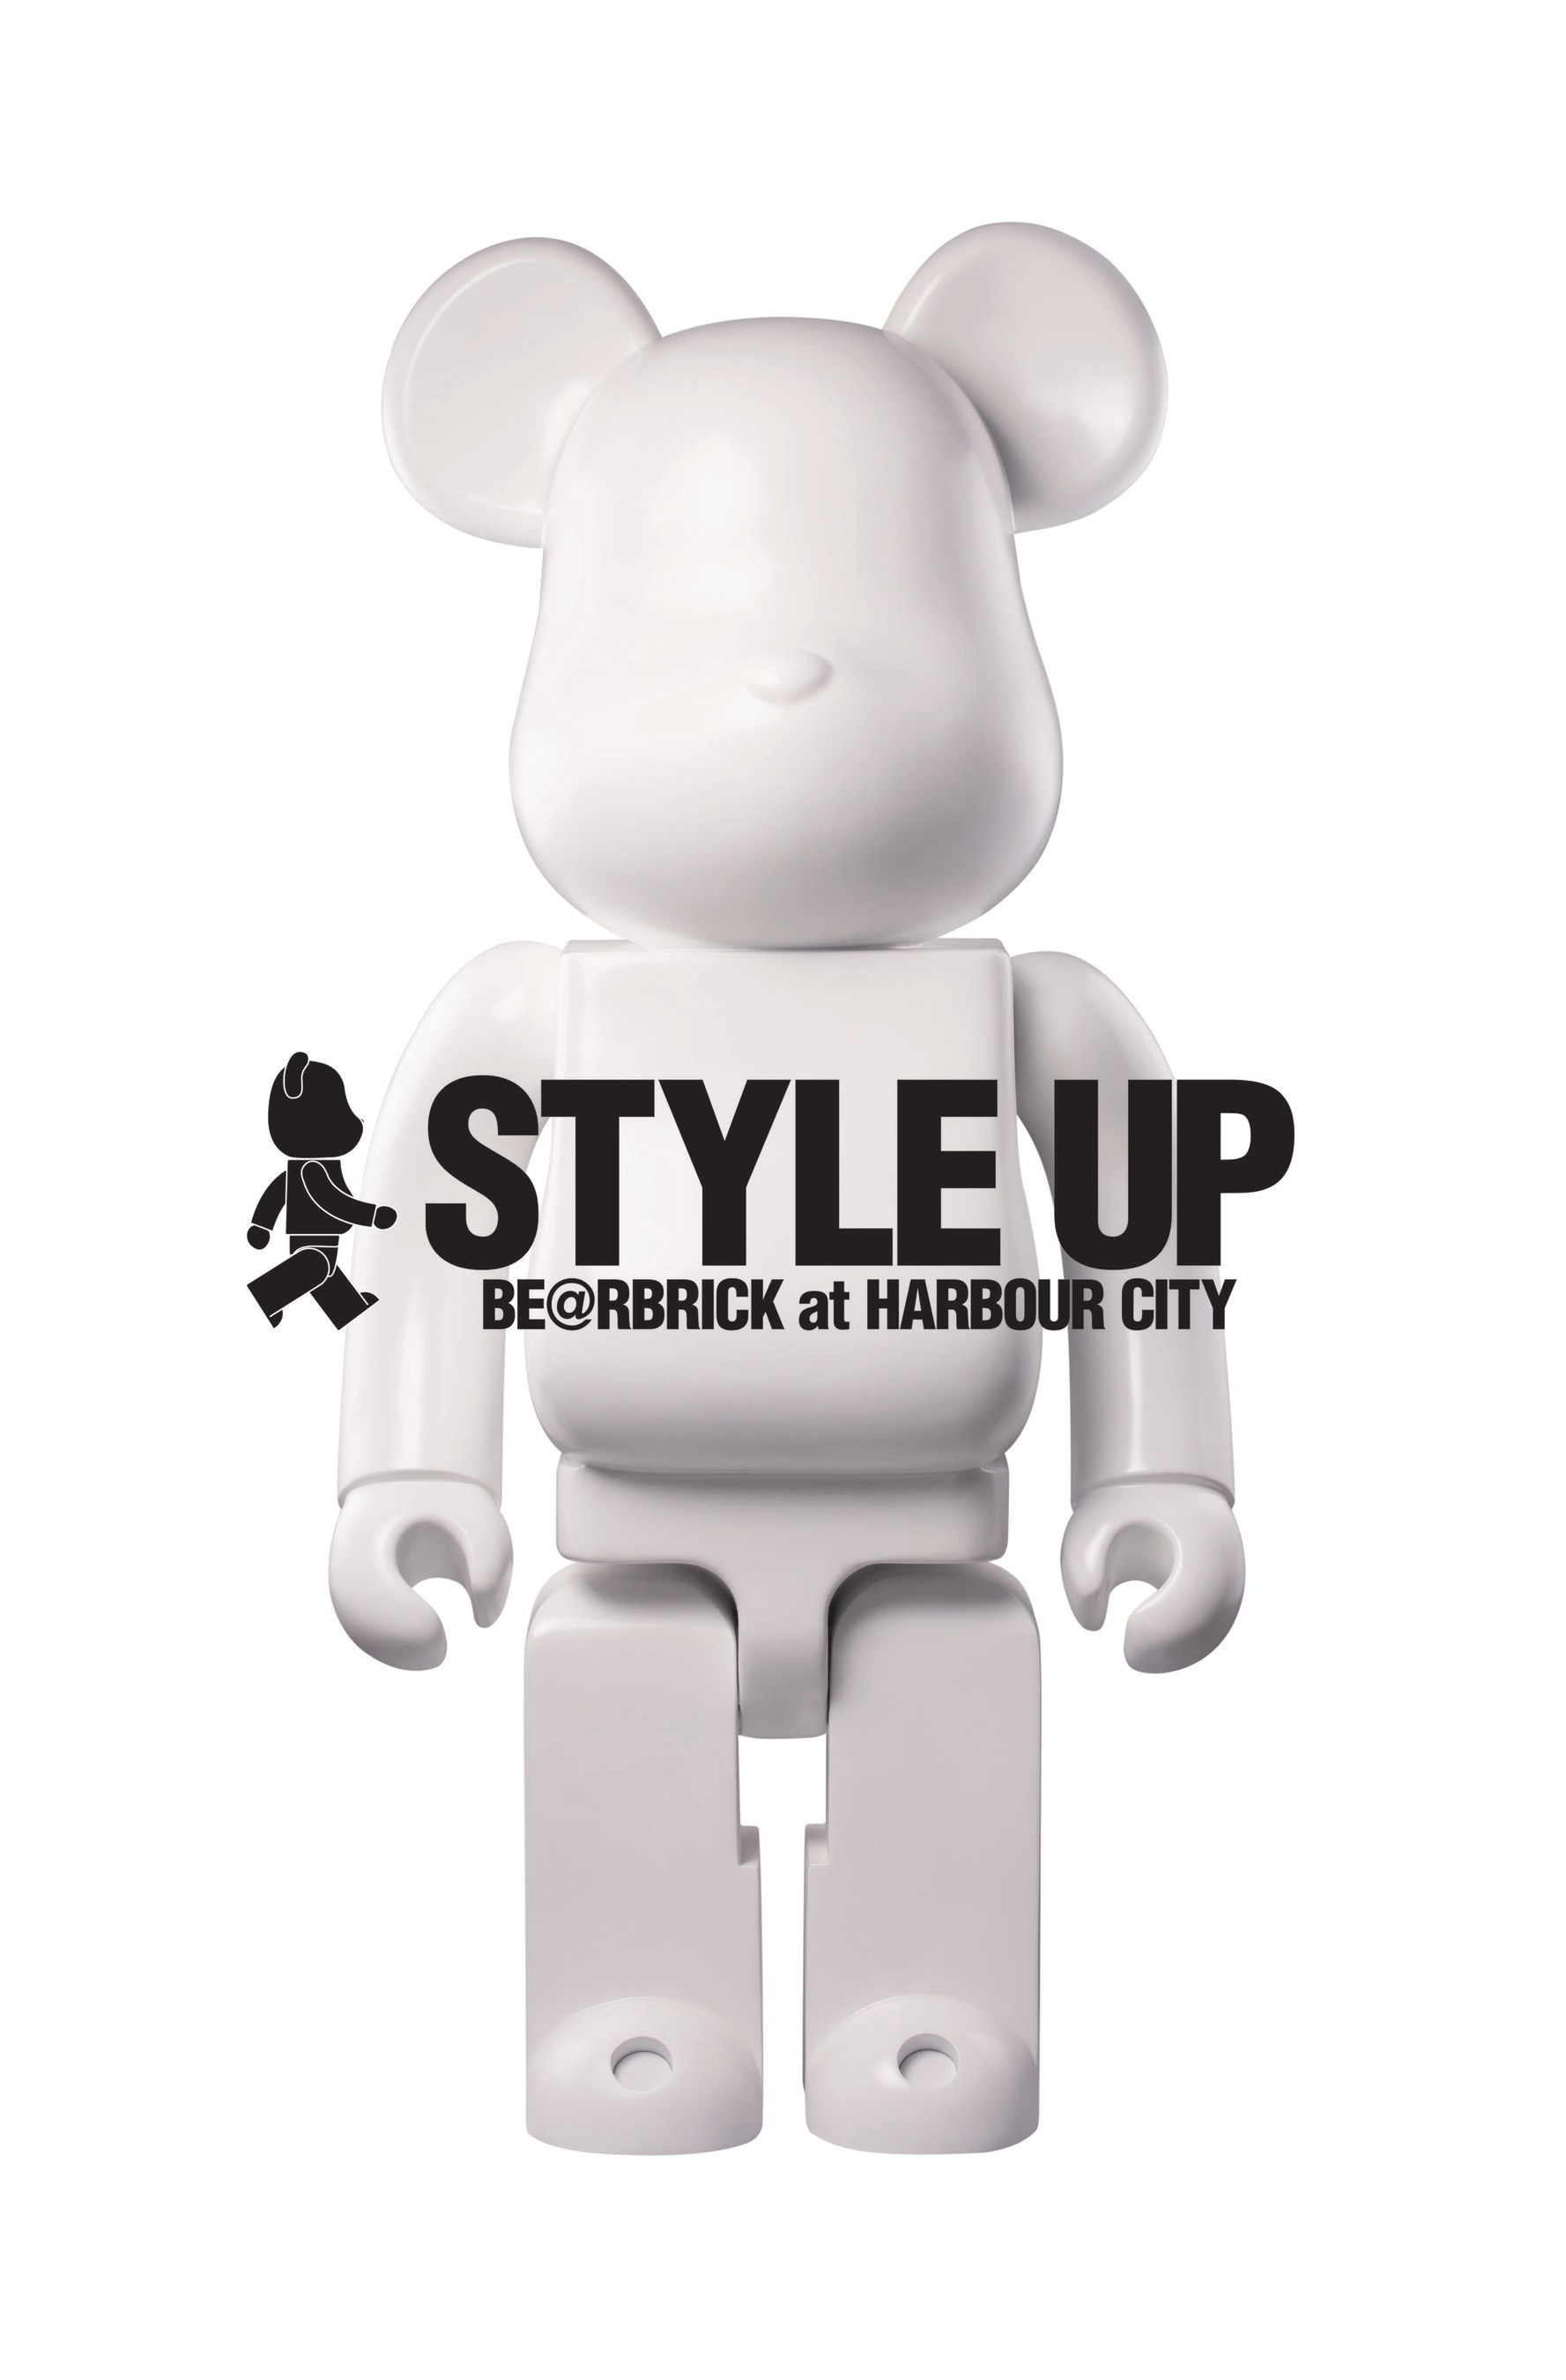 """8c2c12f1 """"Style Up BE@RBRICK at Harbour City"""" - Hong Kong's Largest-Ever """" ..."""